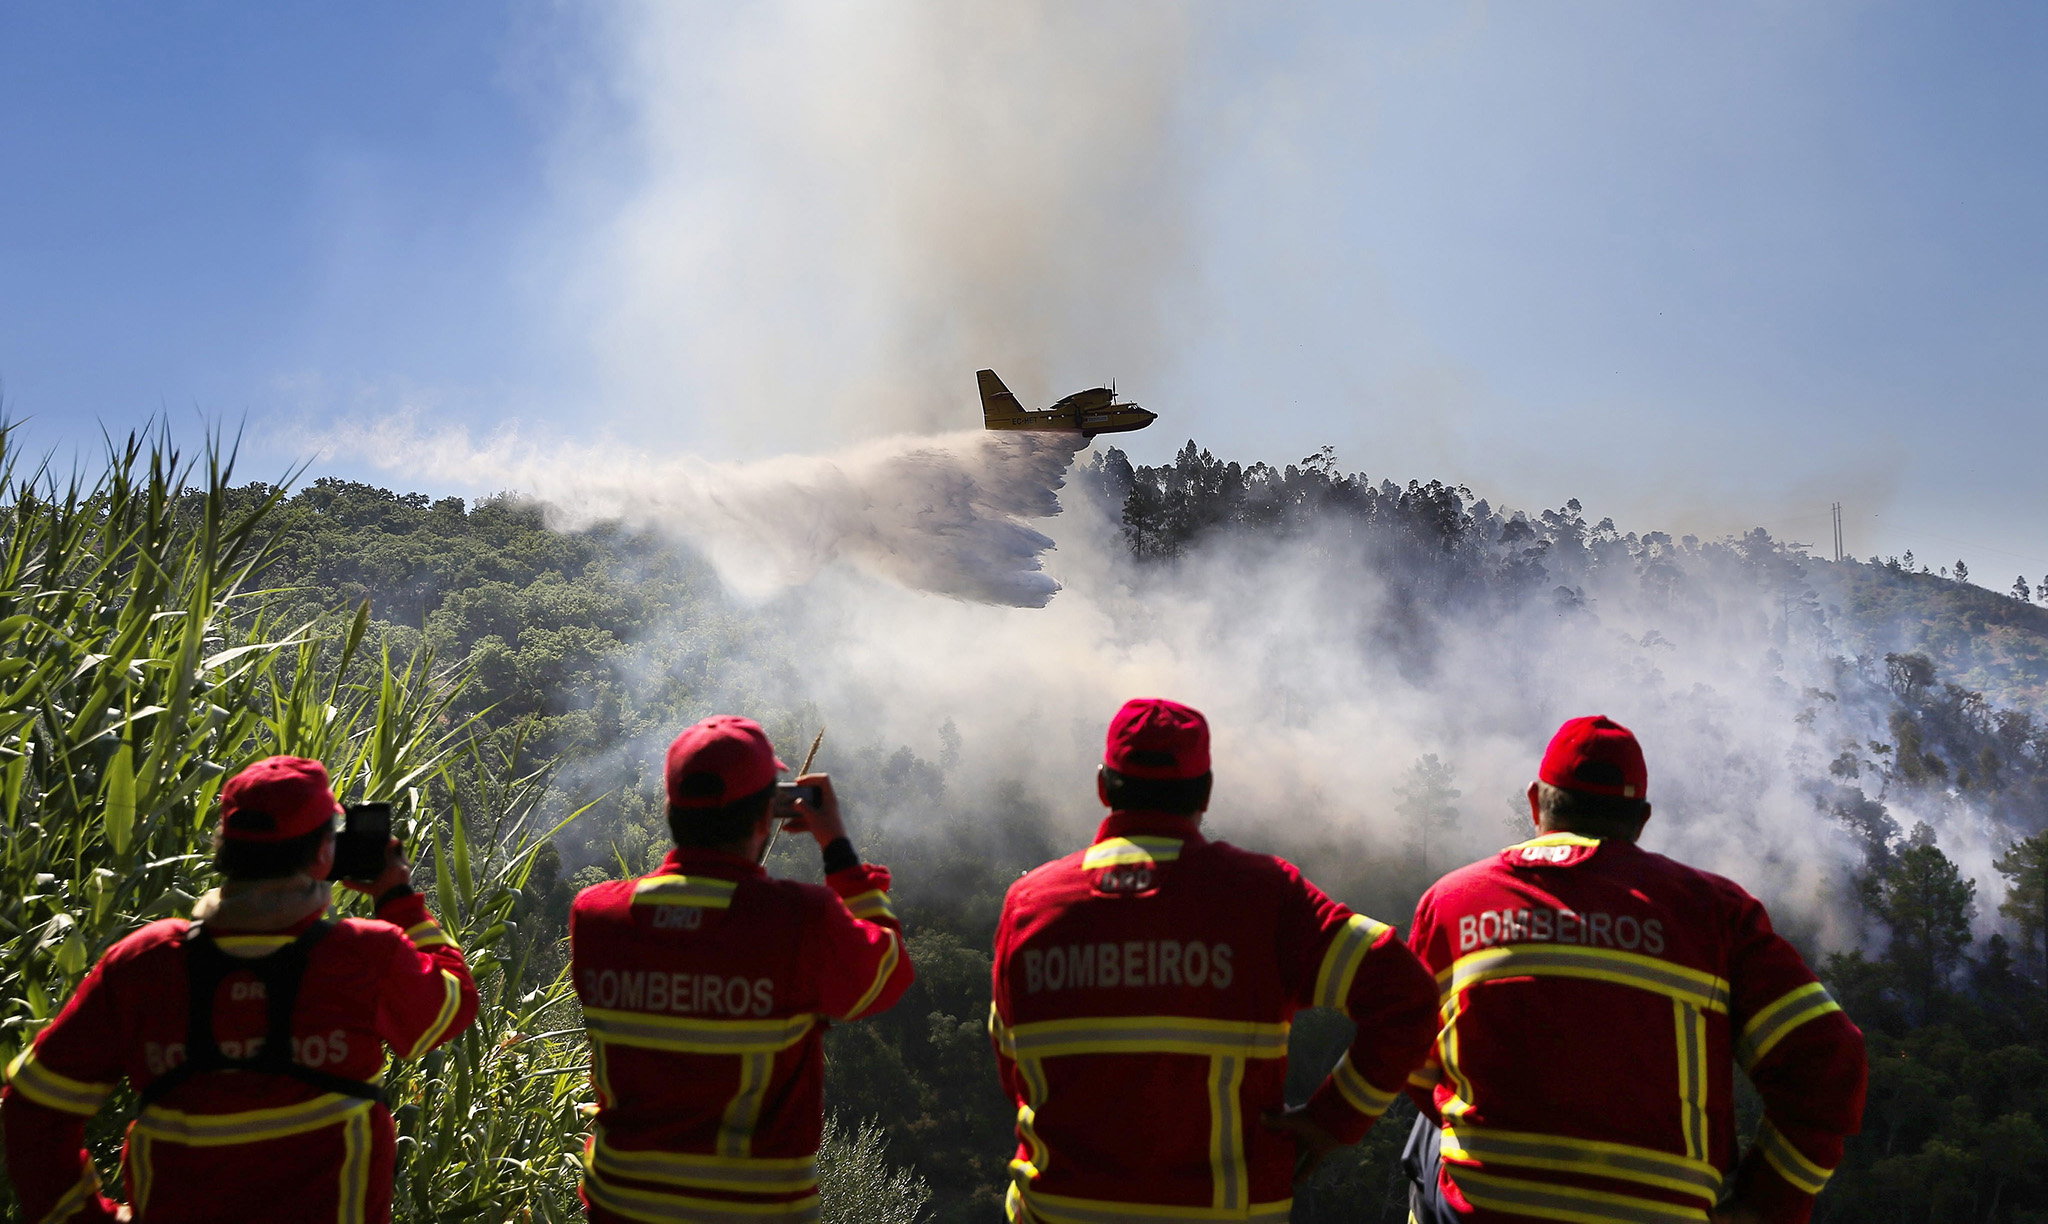 Portuguese fireman watch as a Canadair sprays water at a forest fire in the area of Serra de Monchique, in Monchique, Portugal, 09 September 2016. The Monchique fire has been burning since 03 September, forcing the evacuation of several towns.  EPA/JOSE SENA GOULAO